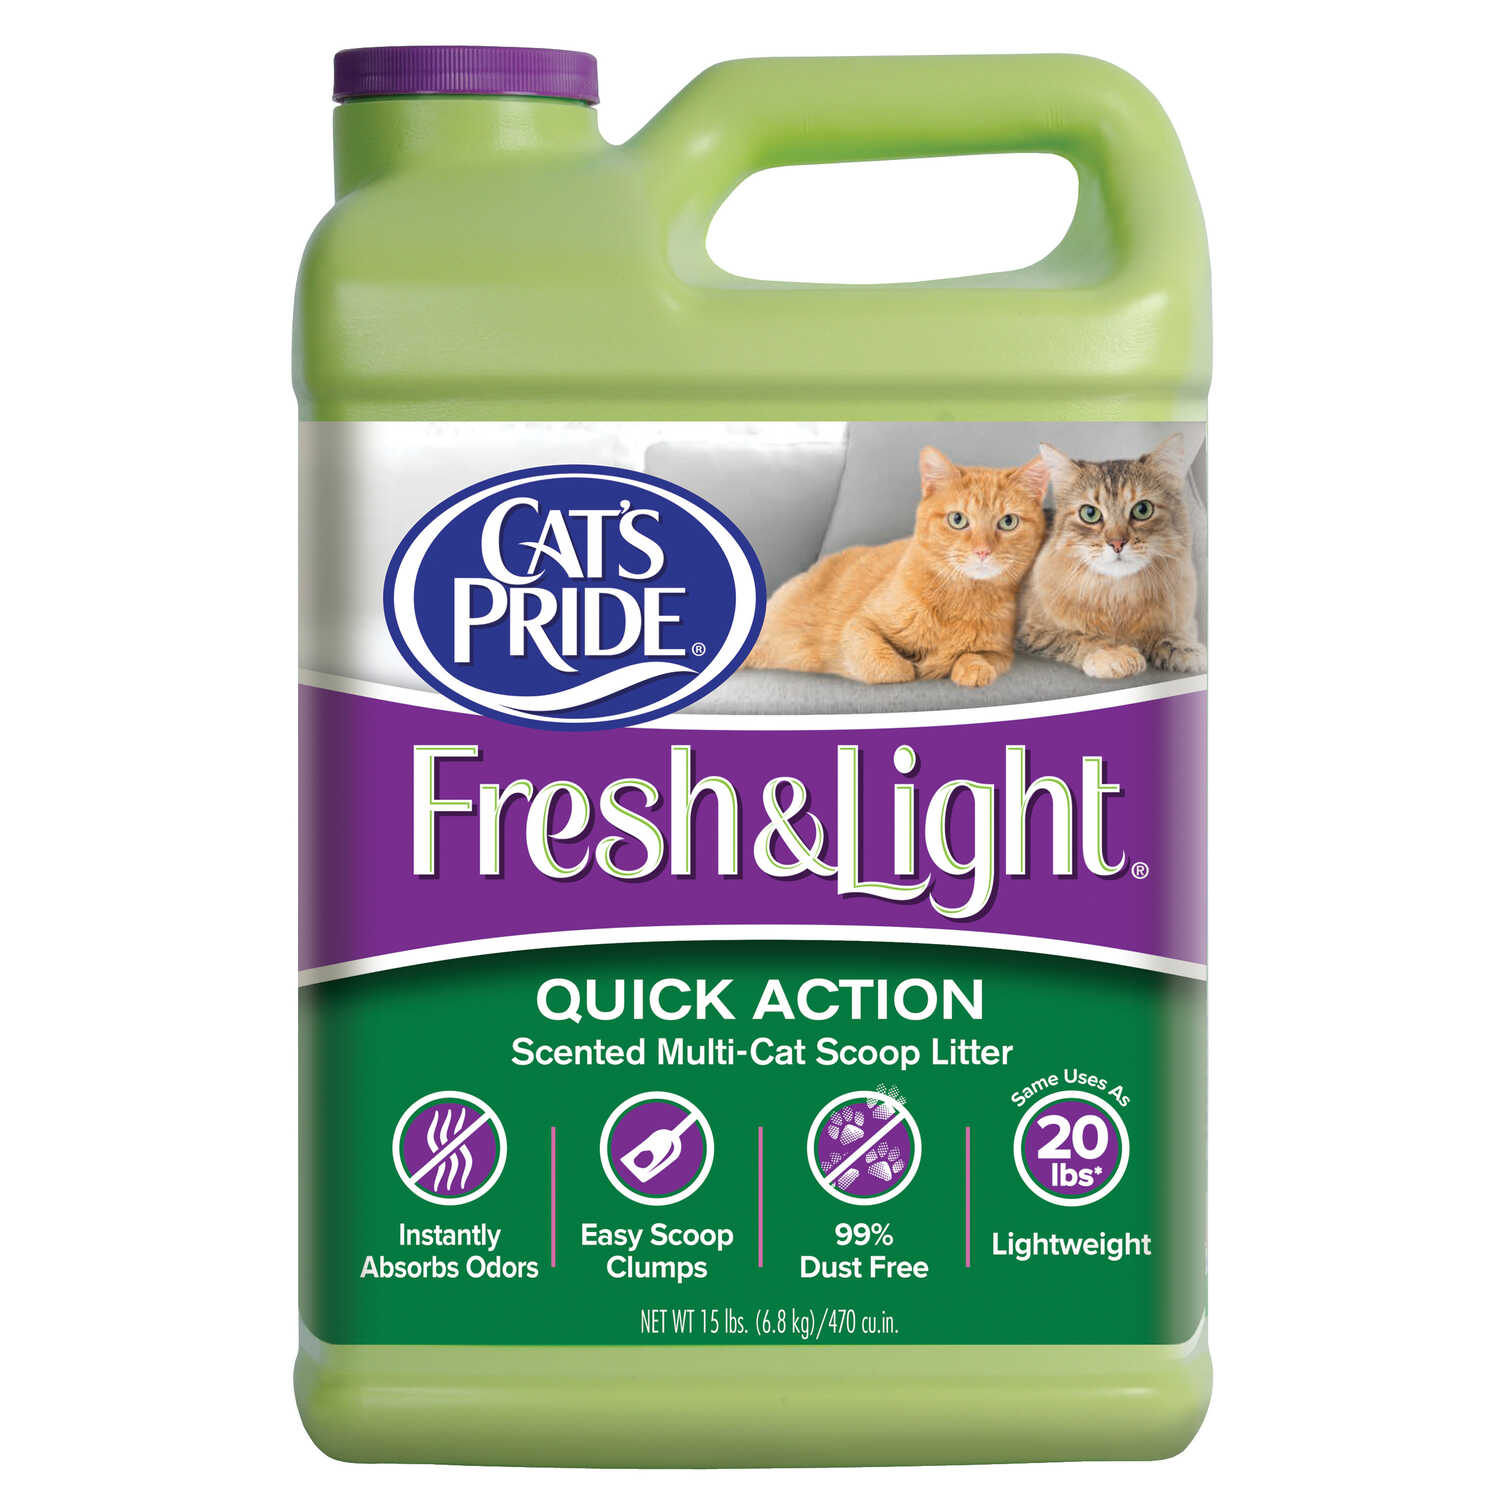 Cats Pride  Cat Litter  Fresh and Clean Scent